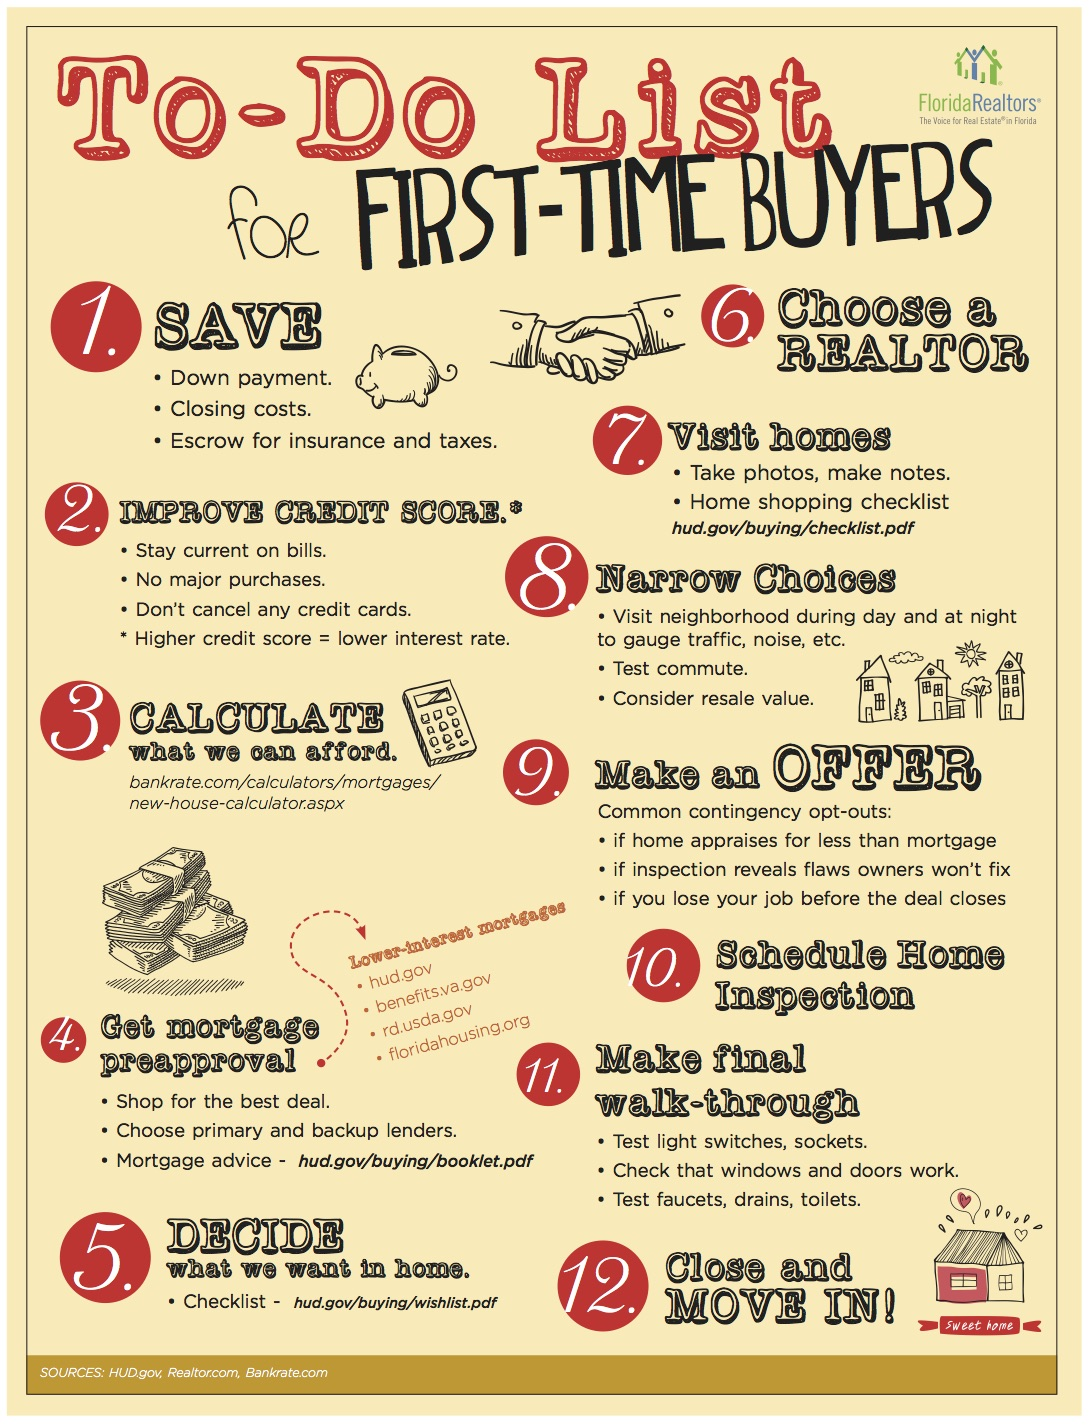 FirstTimeBuyersInfoGraphic-2